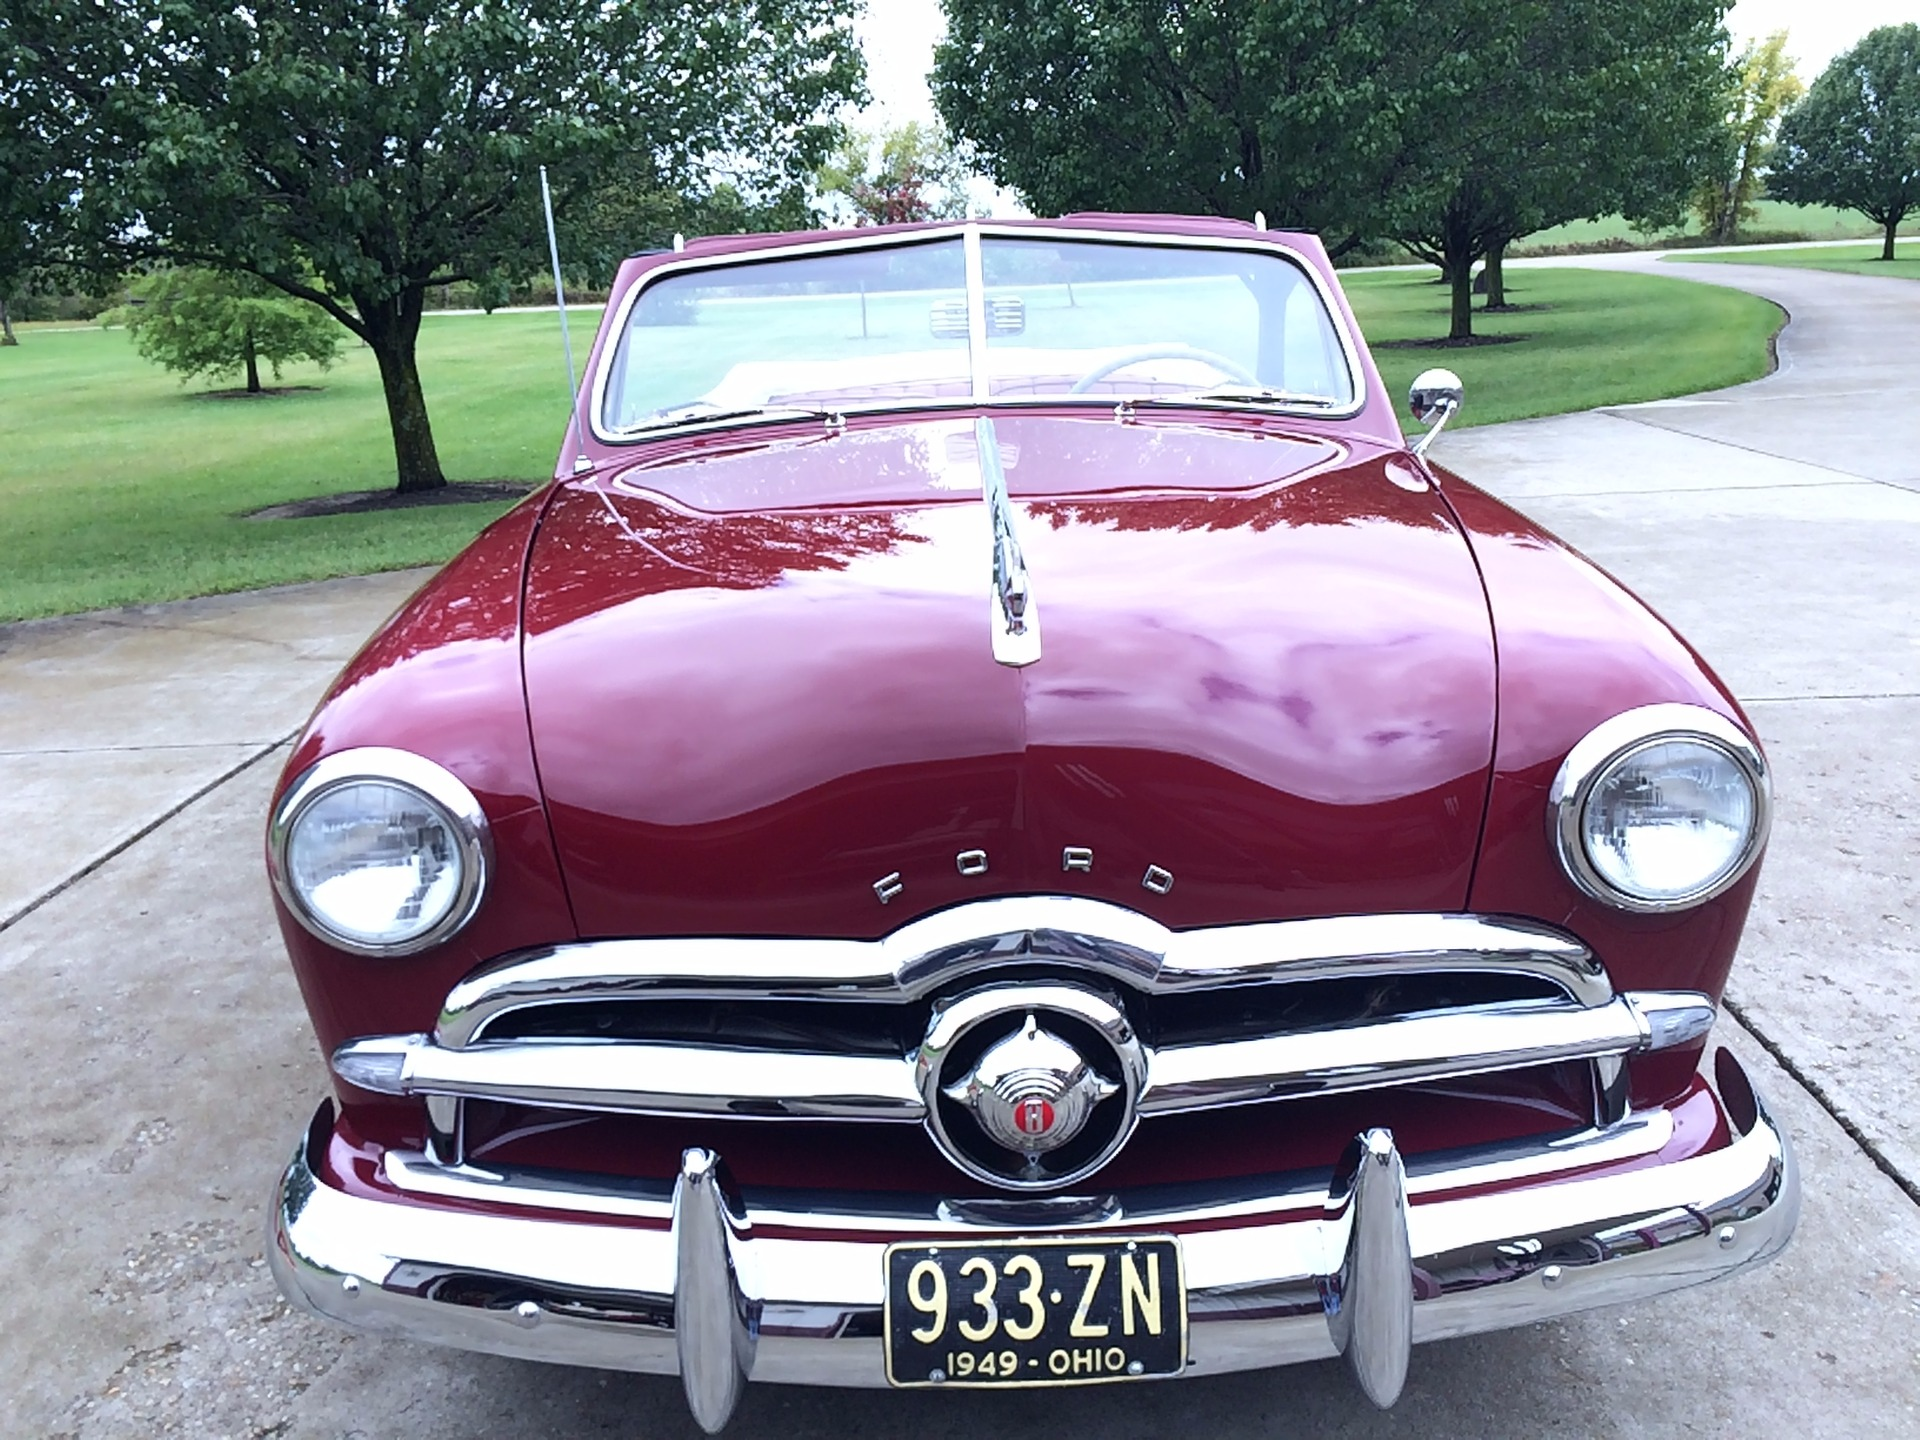 Used-1949-Ford-Deluxe-Convertible